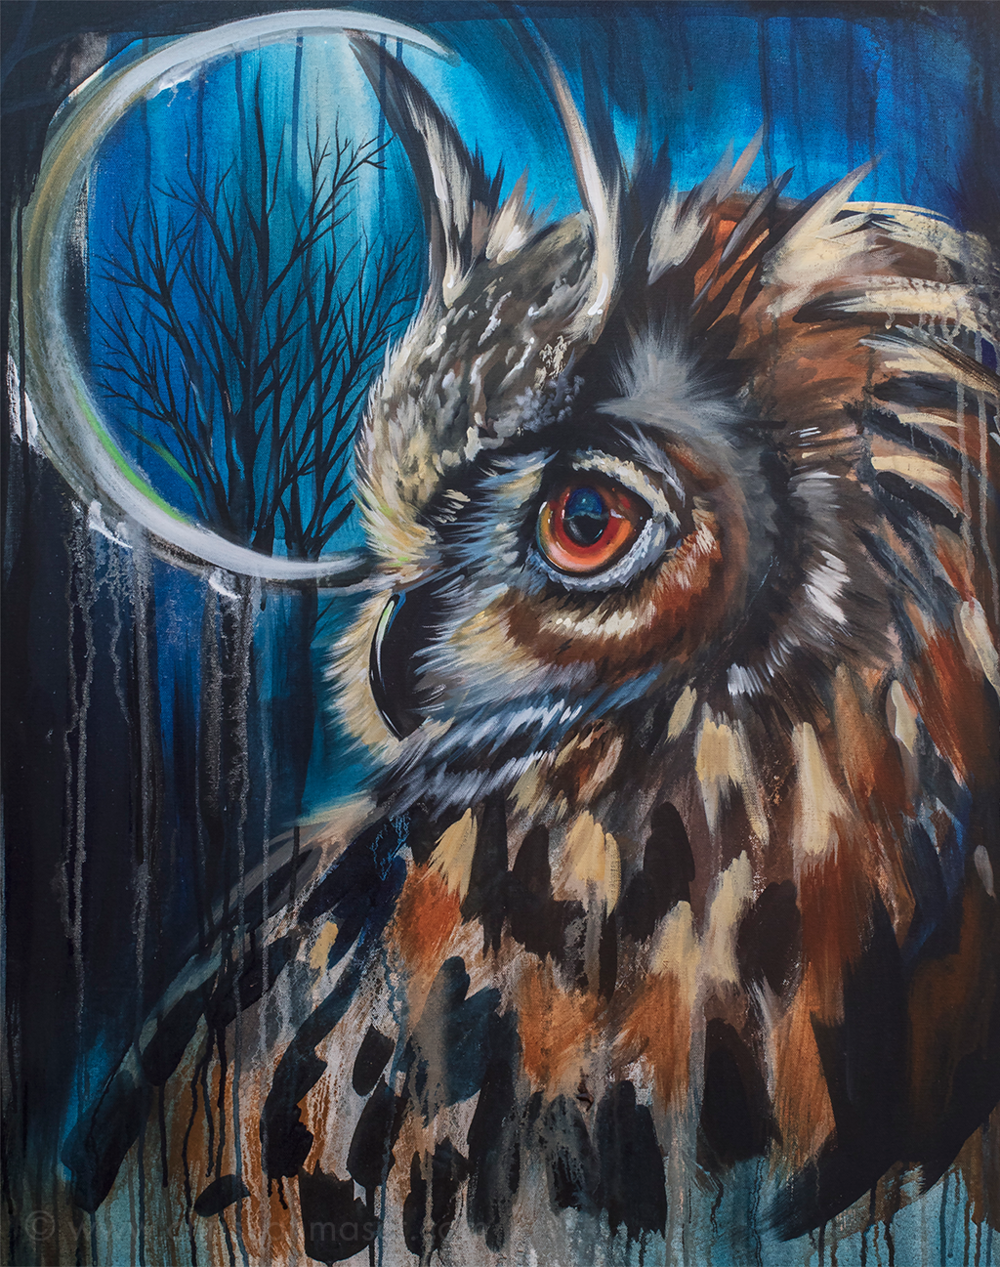 Blackbird_Gallery_Jersey_City_Christian_Masot_28.png